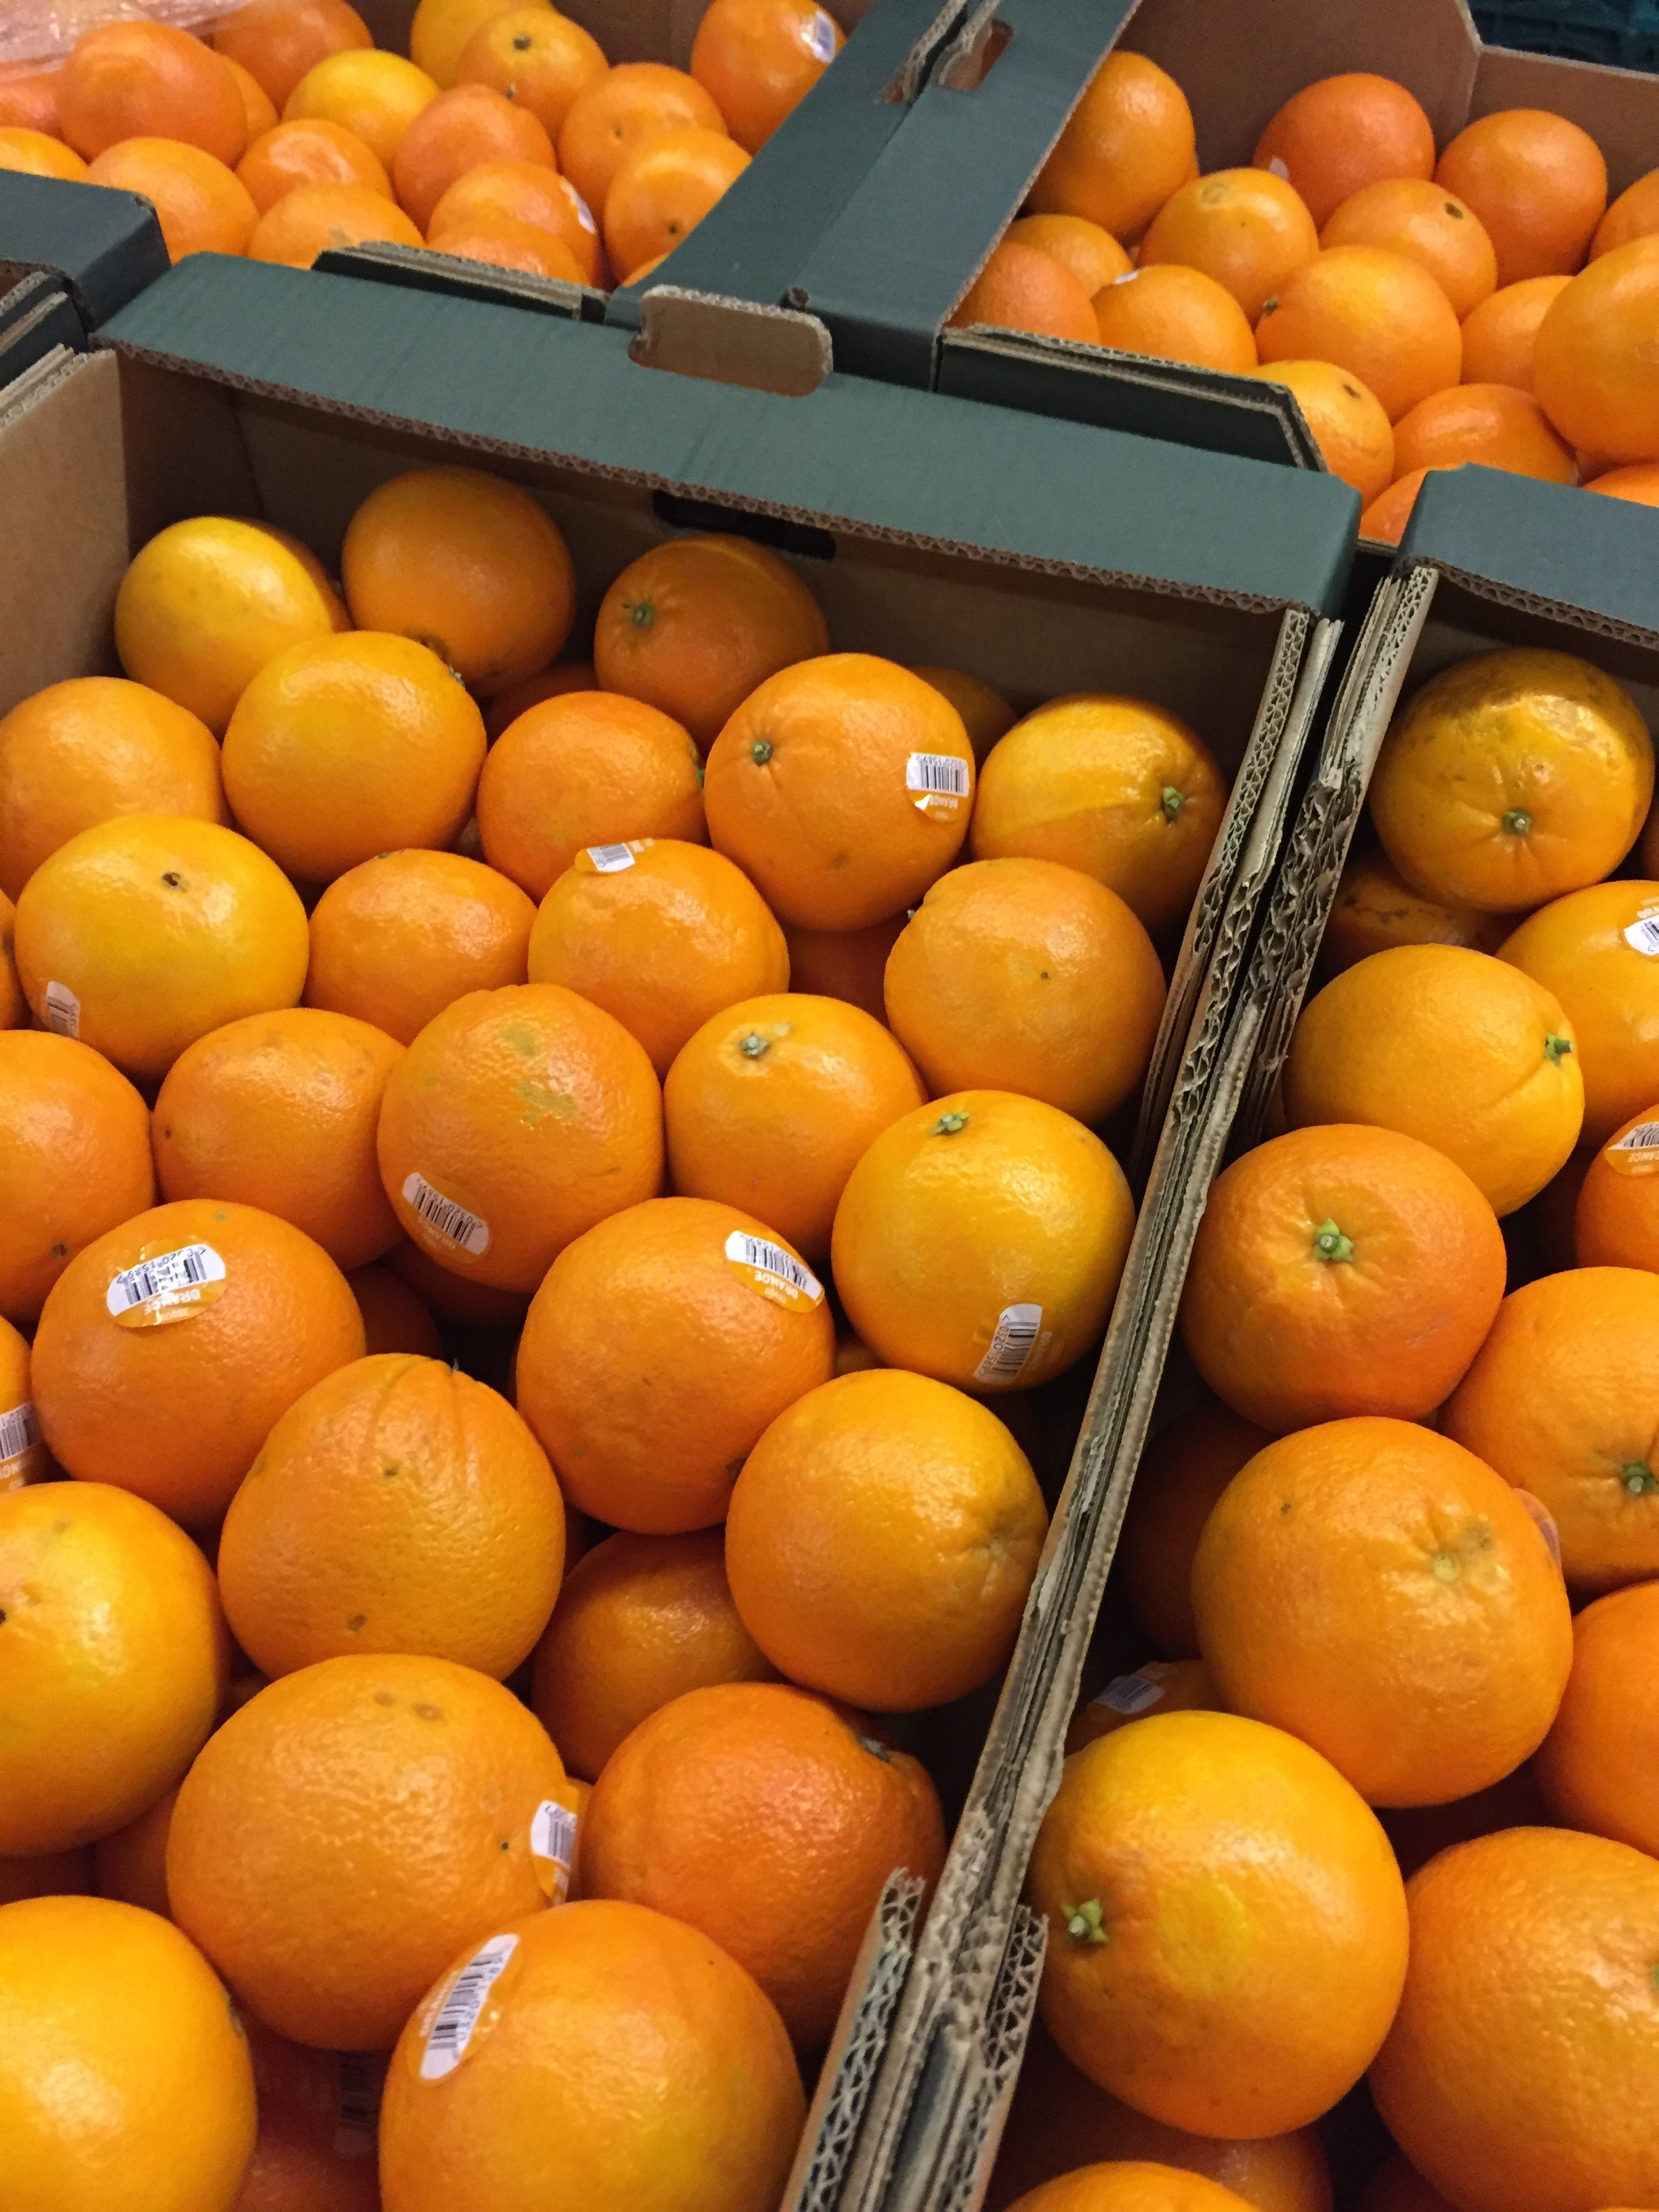 Surplus oranges from AMT fruit